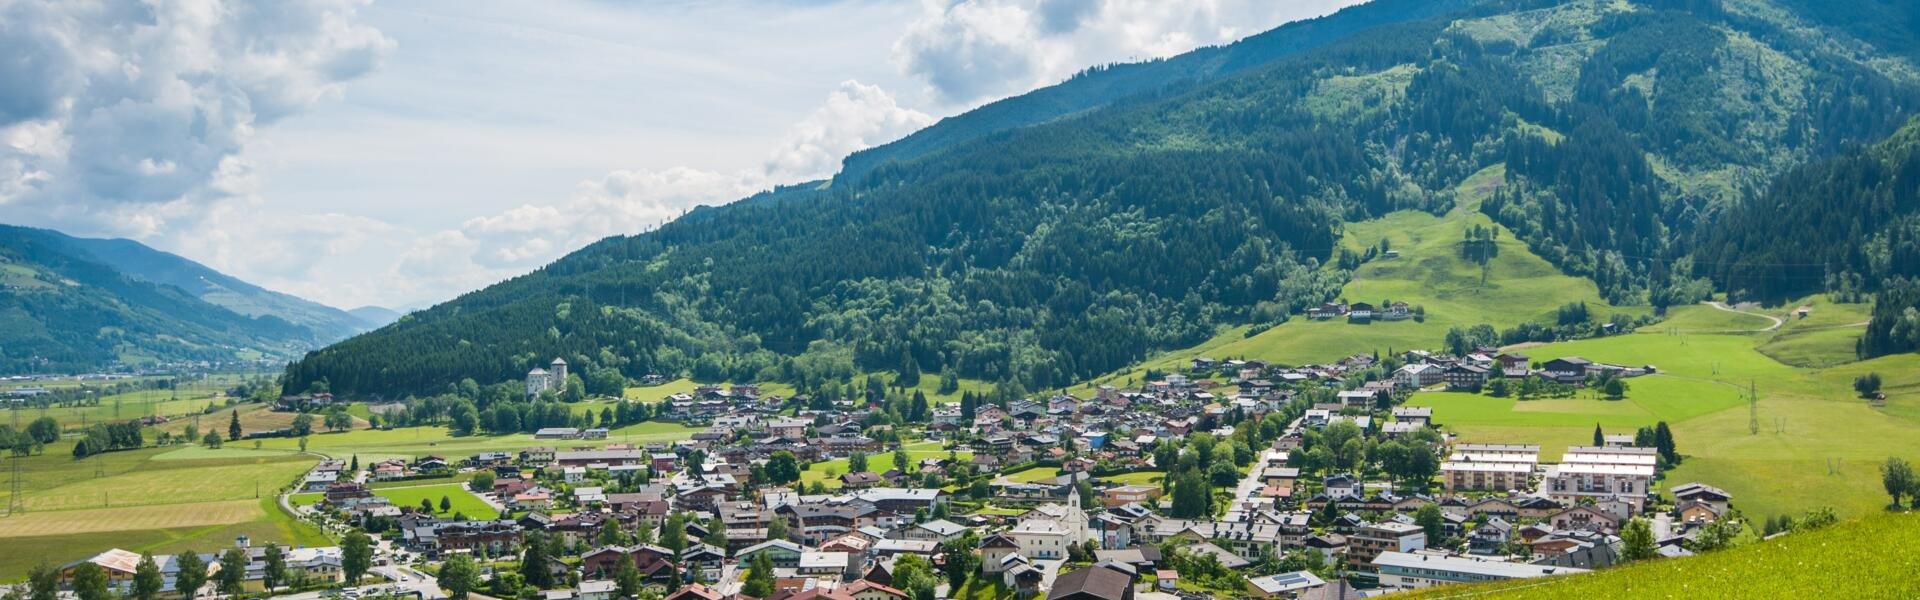 kaprun summer village view